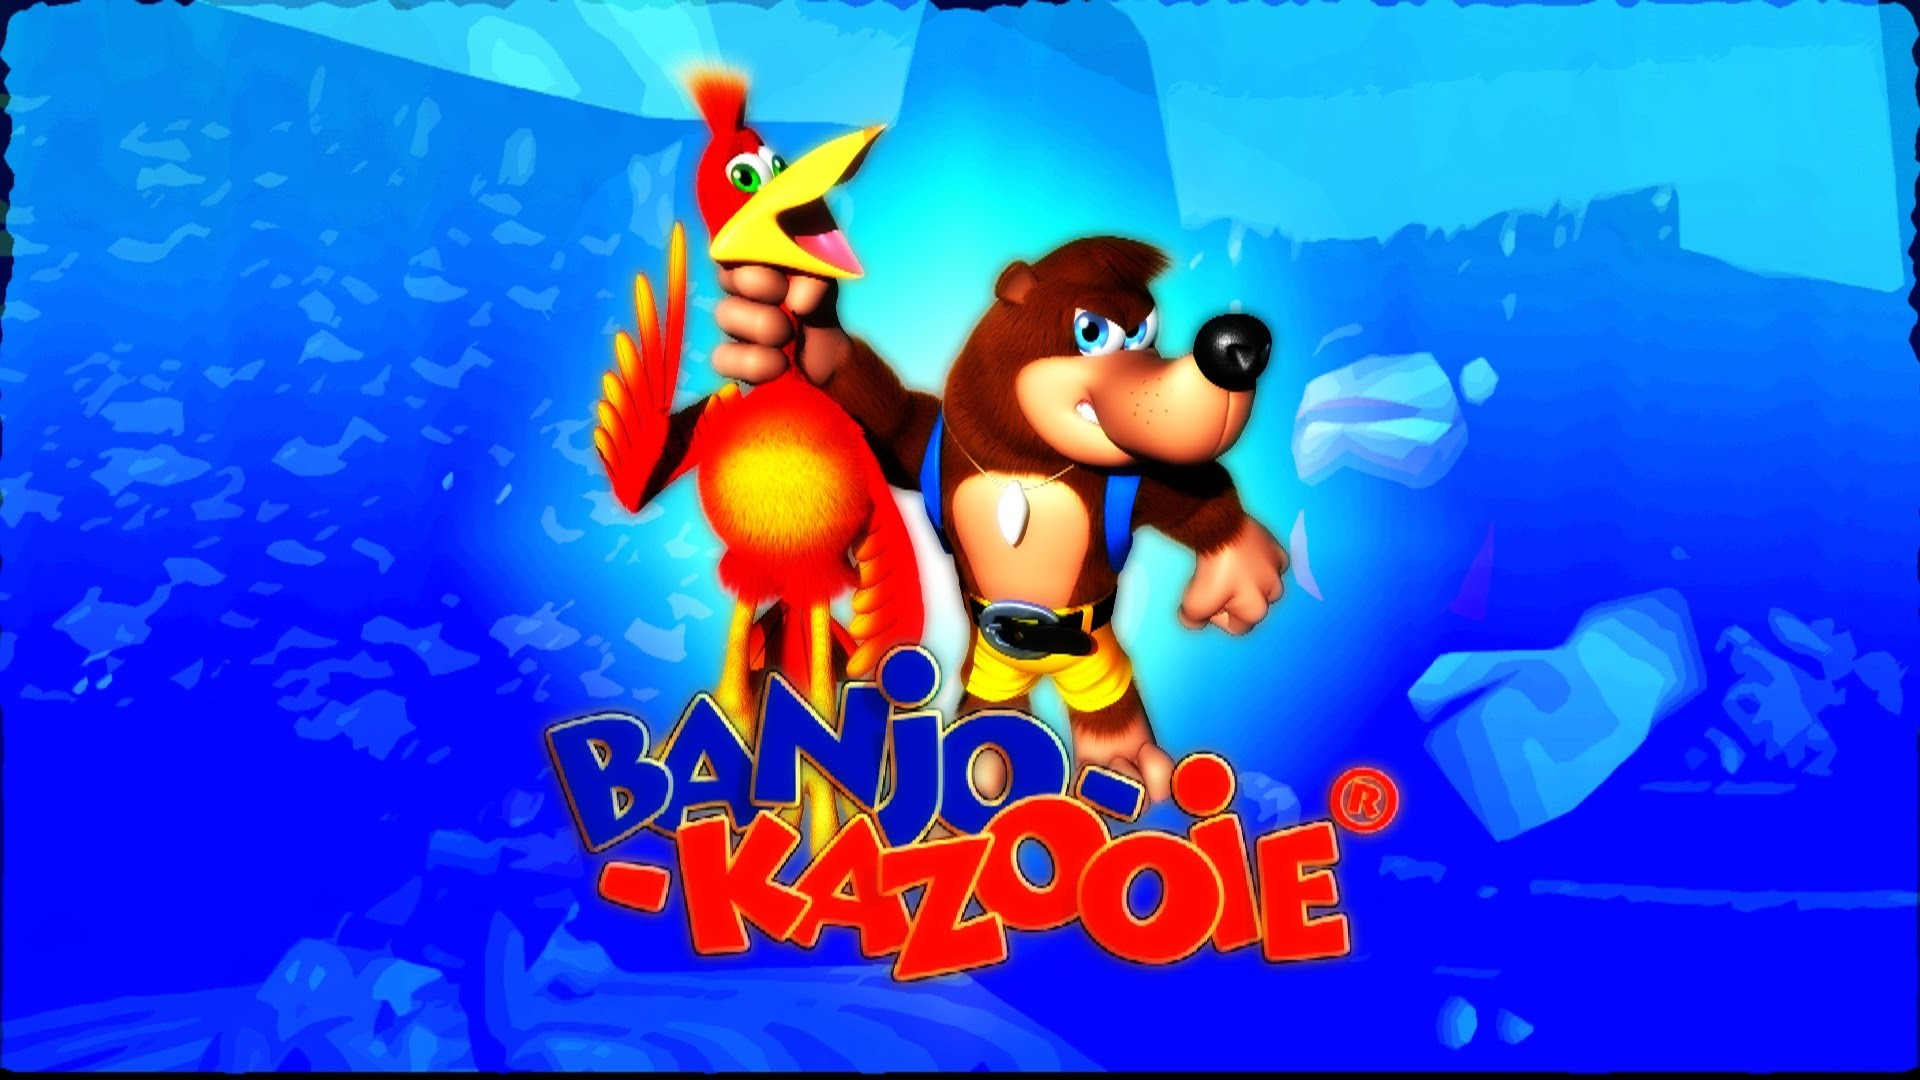 Banjo Kazooie Wallpapers (79+ images)